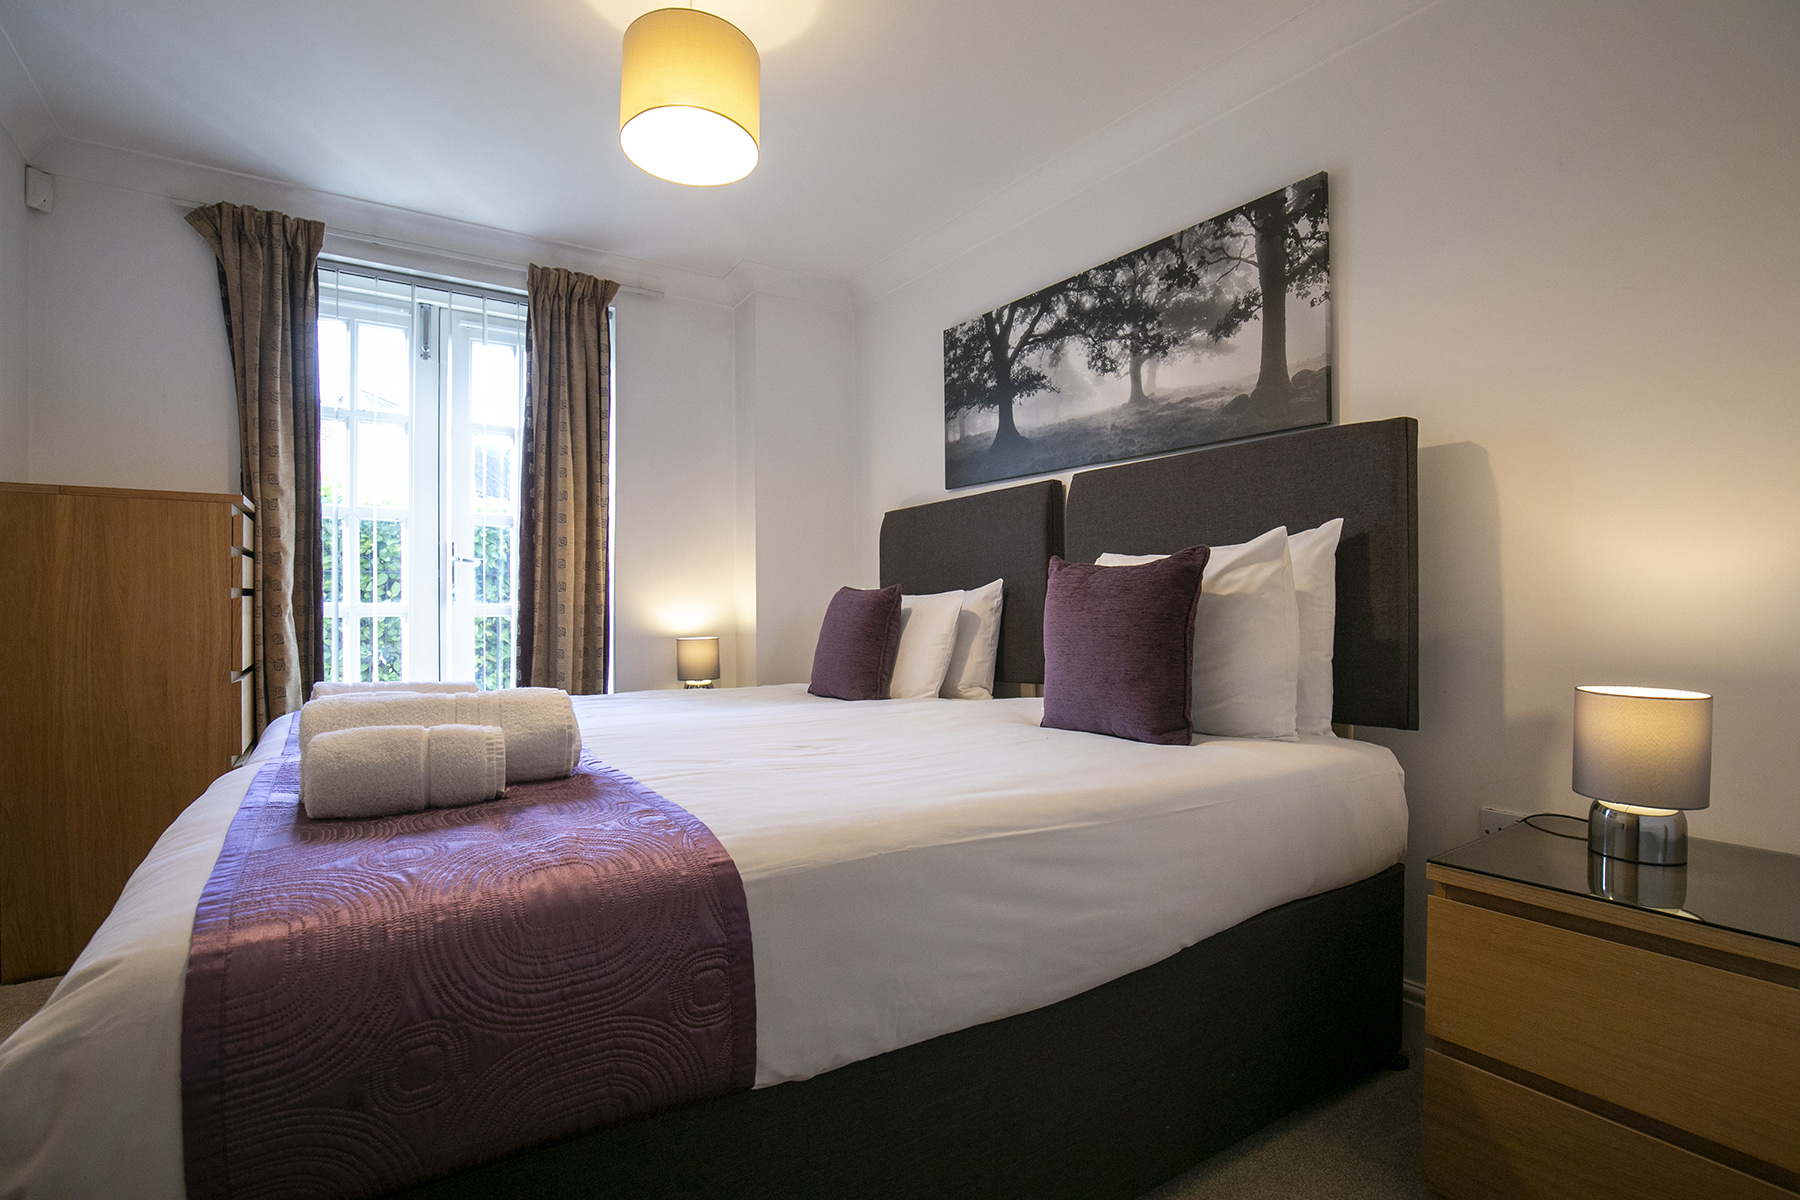 Bed at Flexi-Lets The Bars Apartments, Centre, Guildford